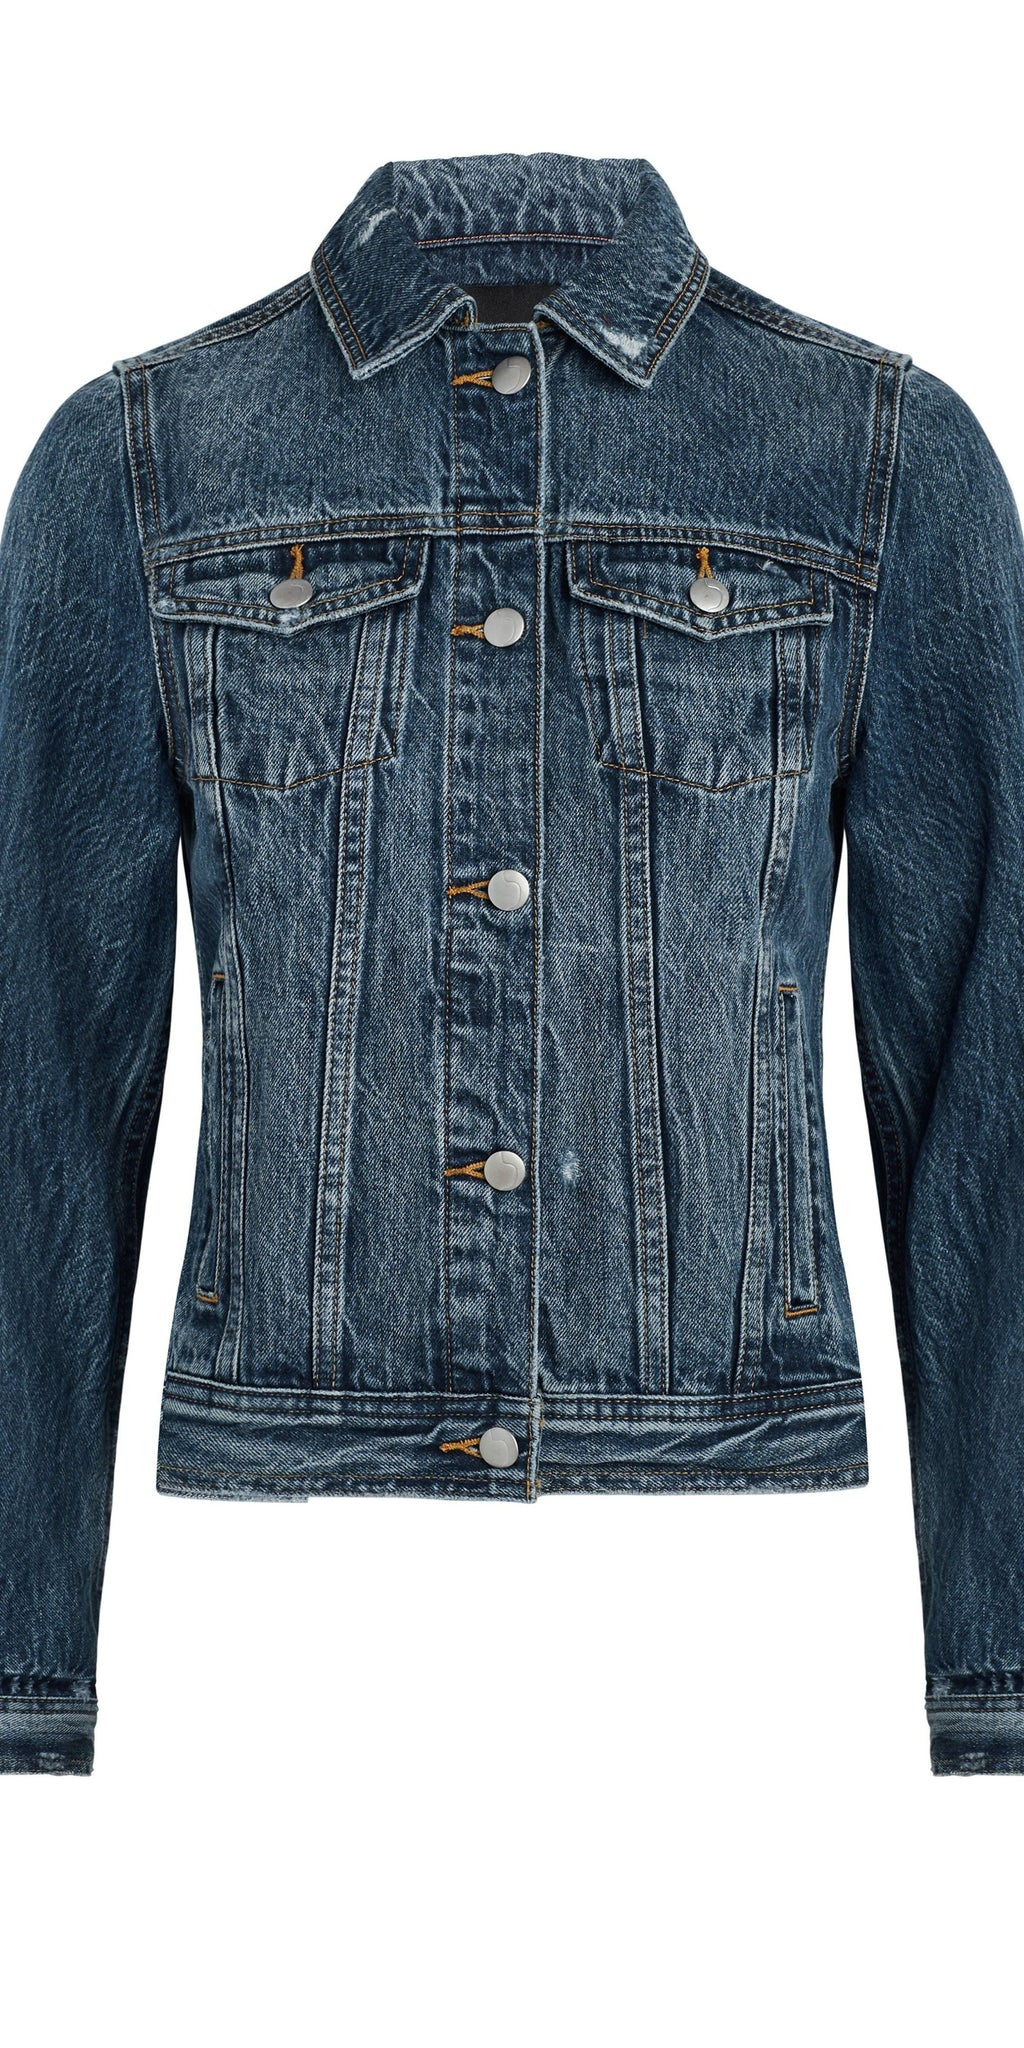 Standard Trucker Jacket-Sea Biscuit Del Mar